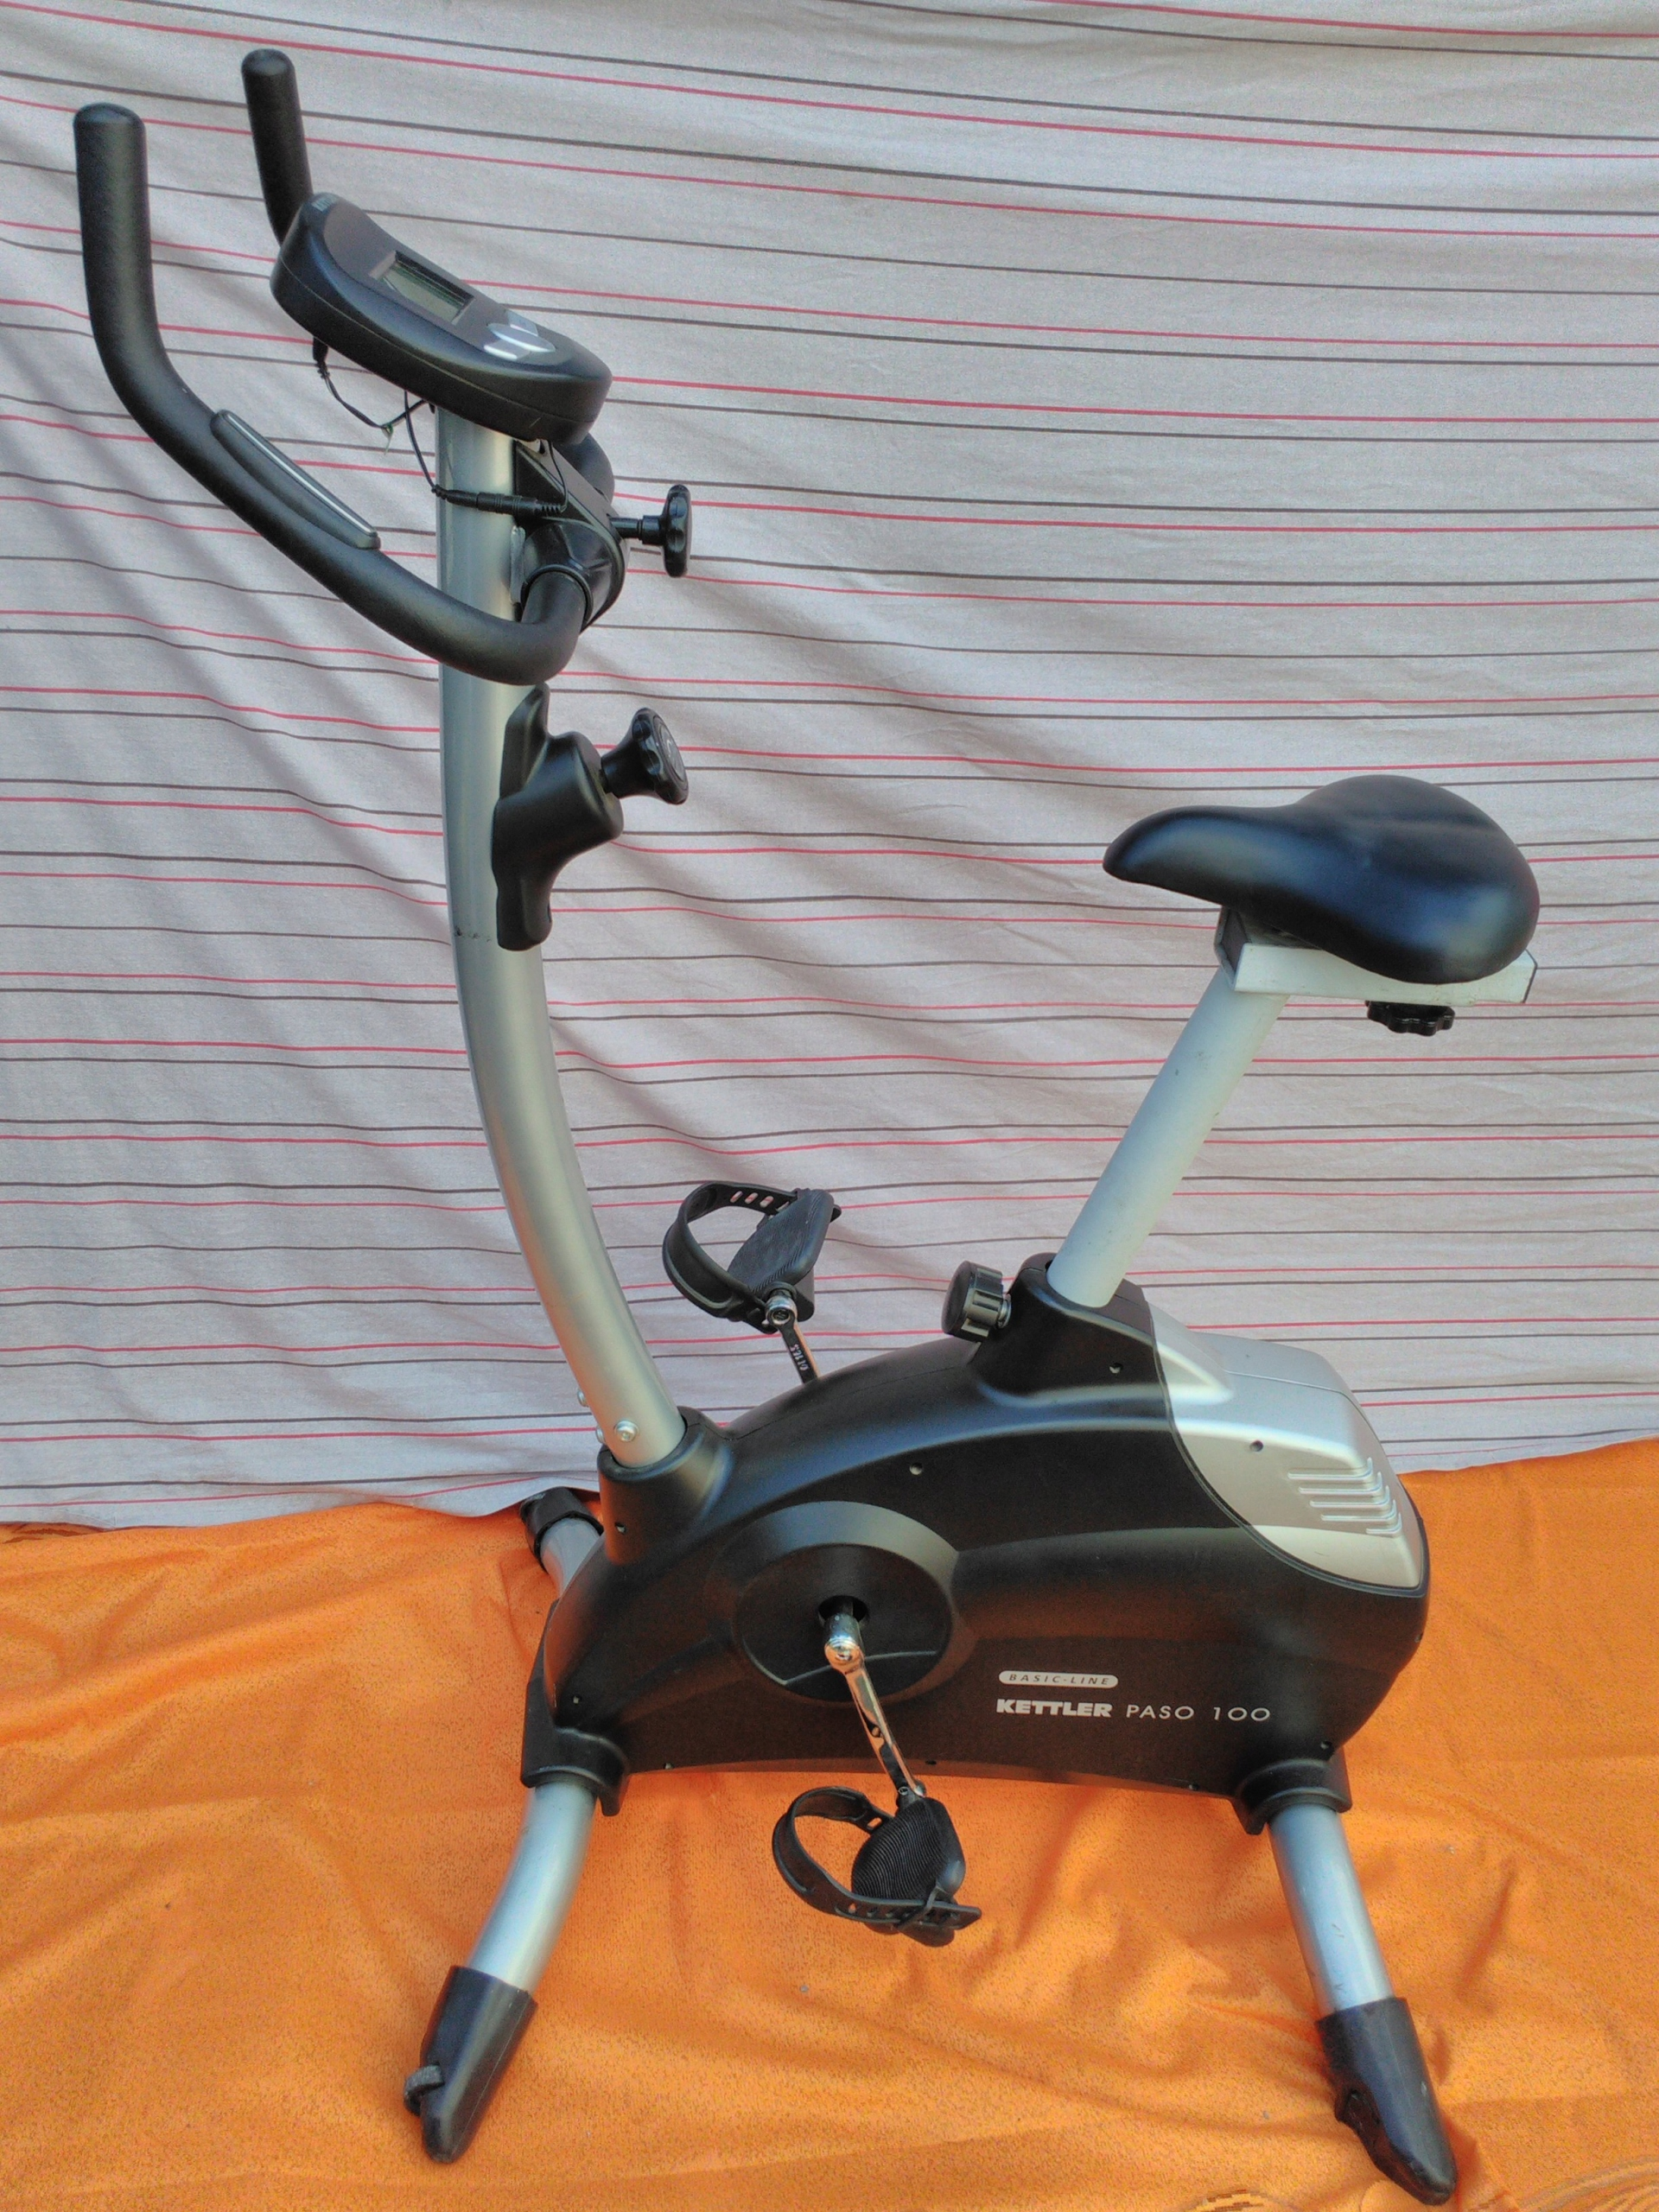 KETTLER PASO 100 ROWER MAGNETYCZNY SOLIDNY